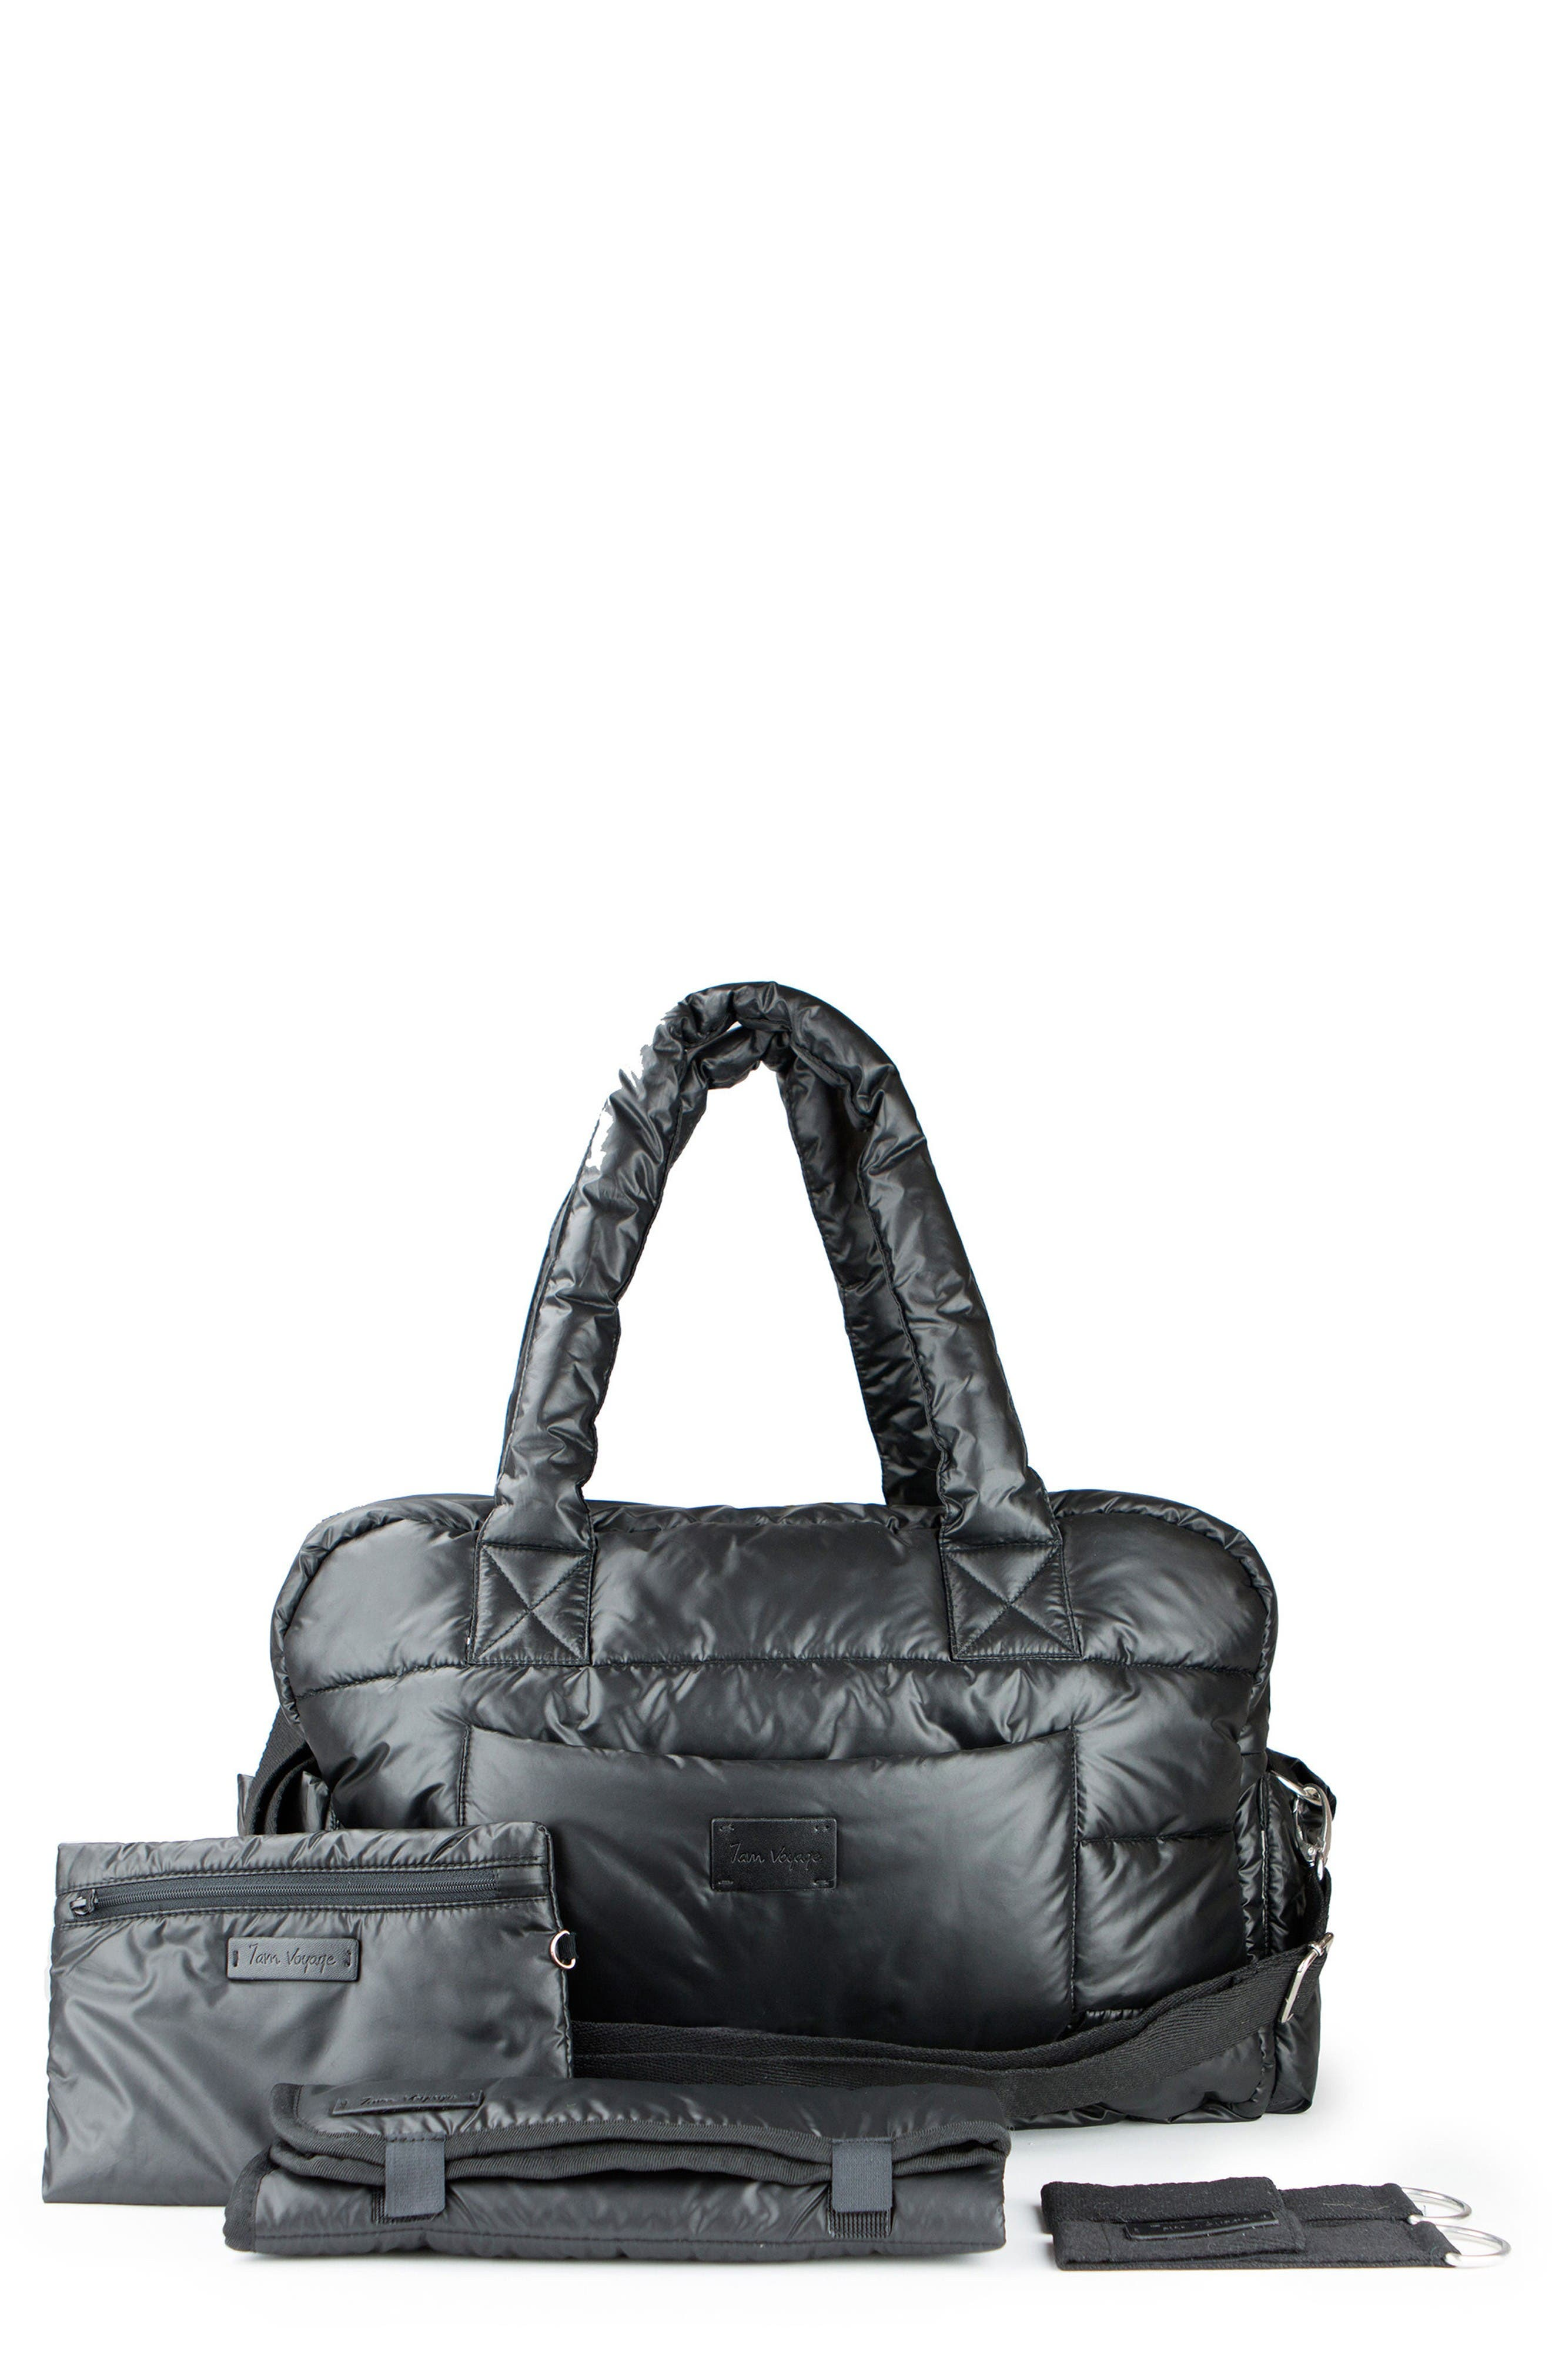 Main Image - 7 A.M. Enfant Soho Water Repellent Diaper Bag